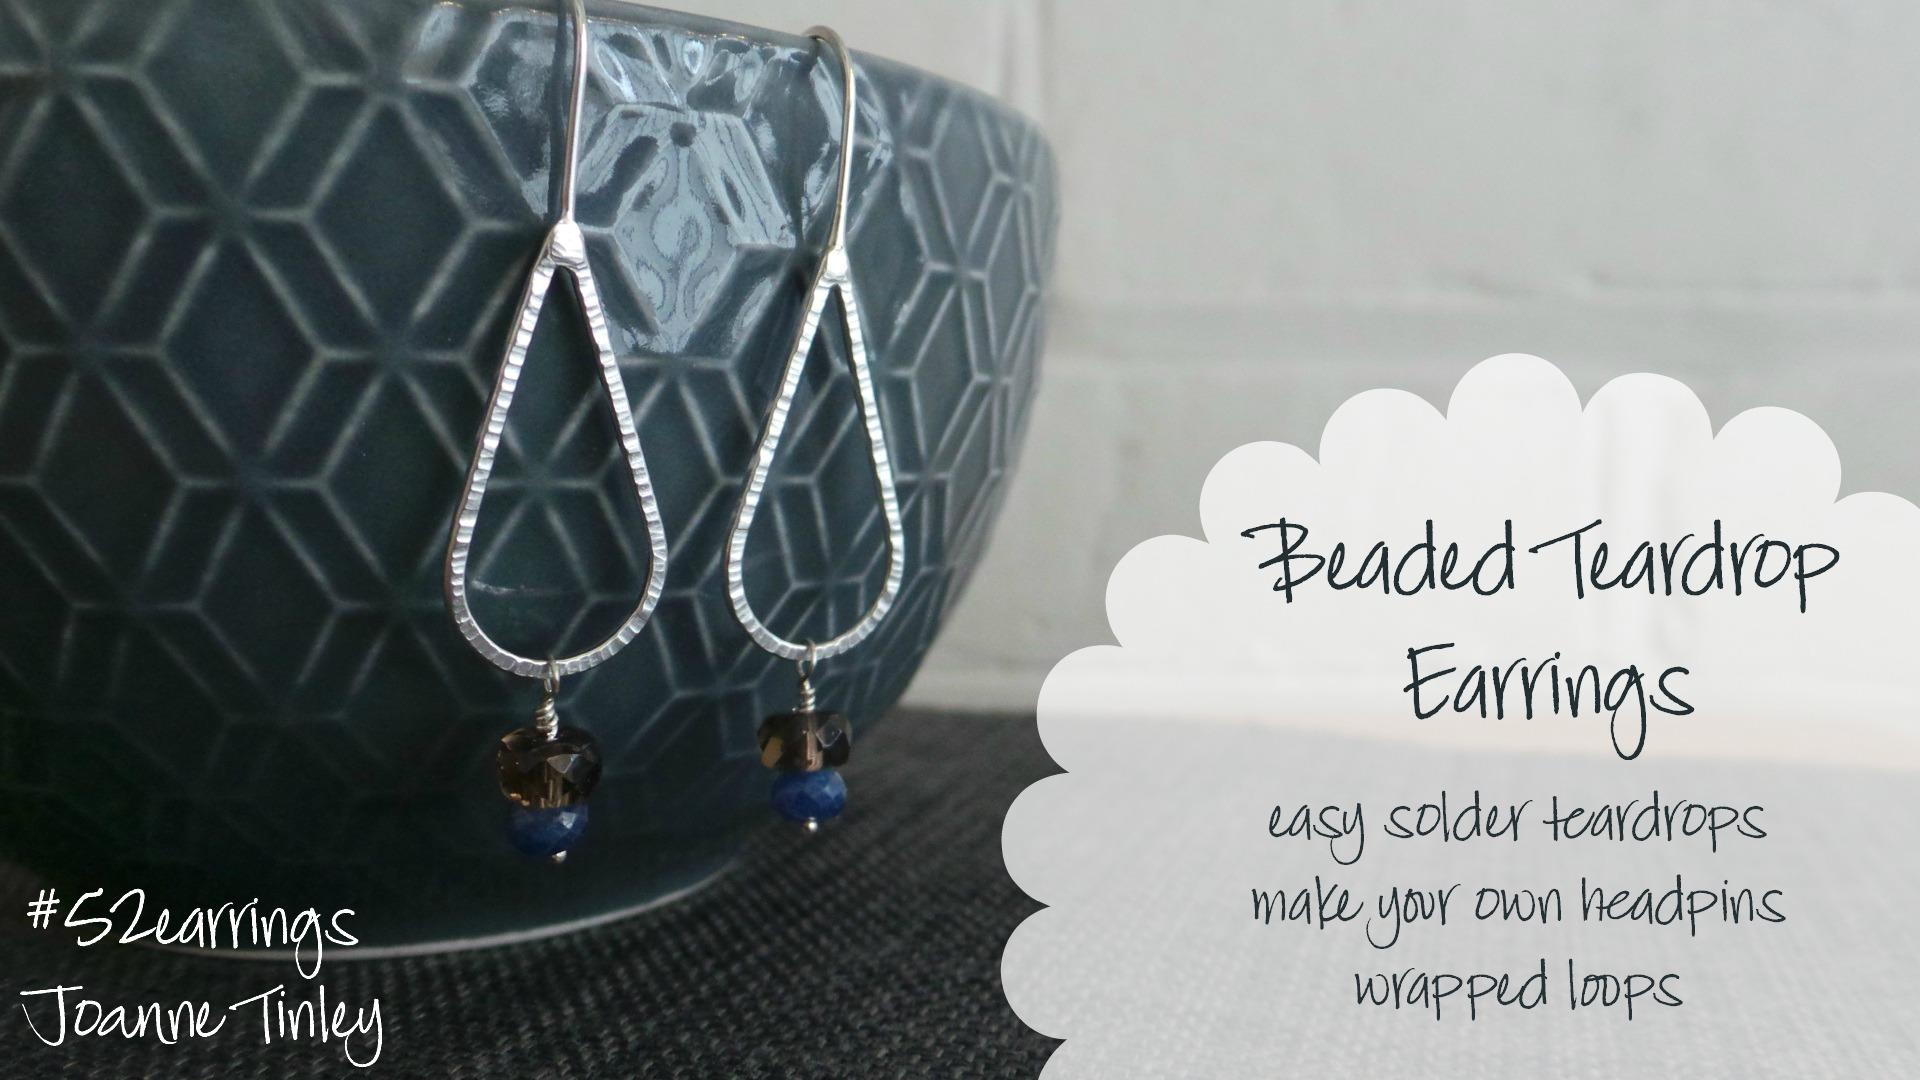 Beaded Teardrops Earrings - learn how to make headpins & soldered ...